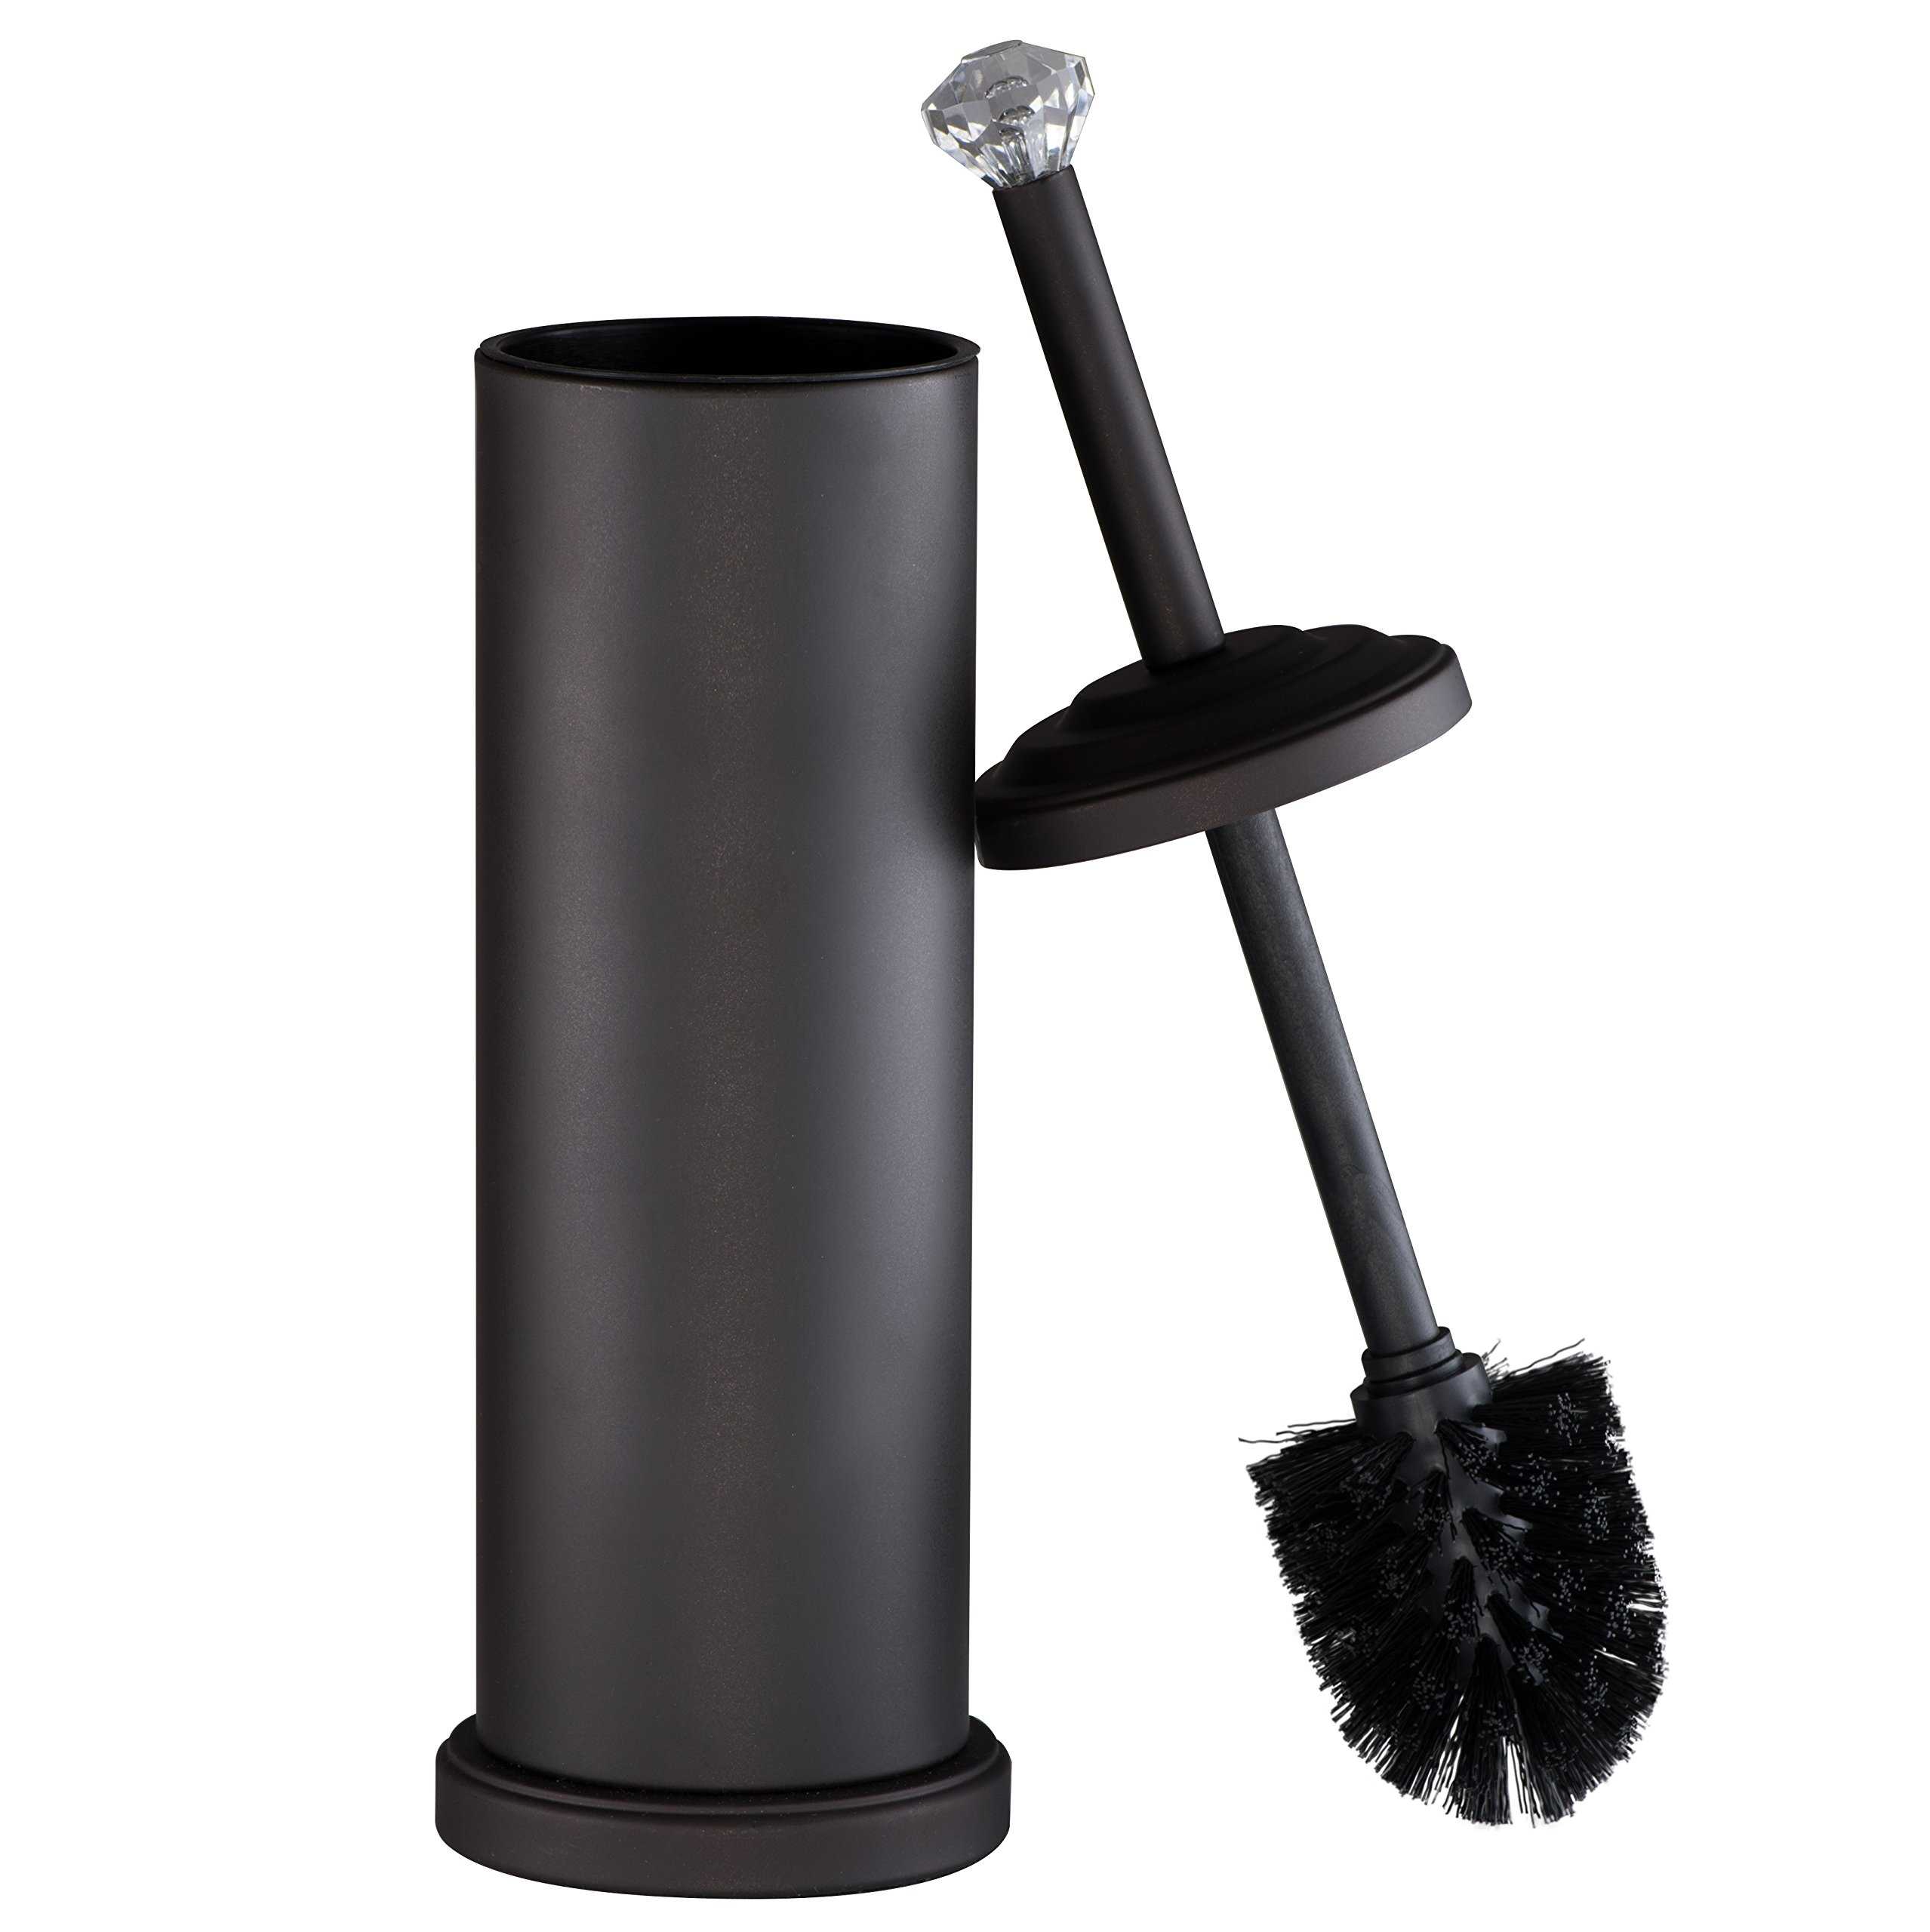 AMG and Enchante Accessories, Diamond Toilet Brush and Holder, TB112A ORB, Oil Rubbed Bronze